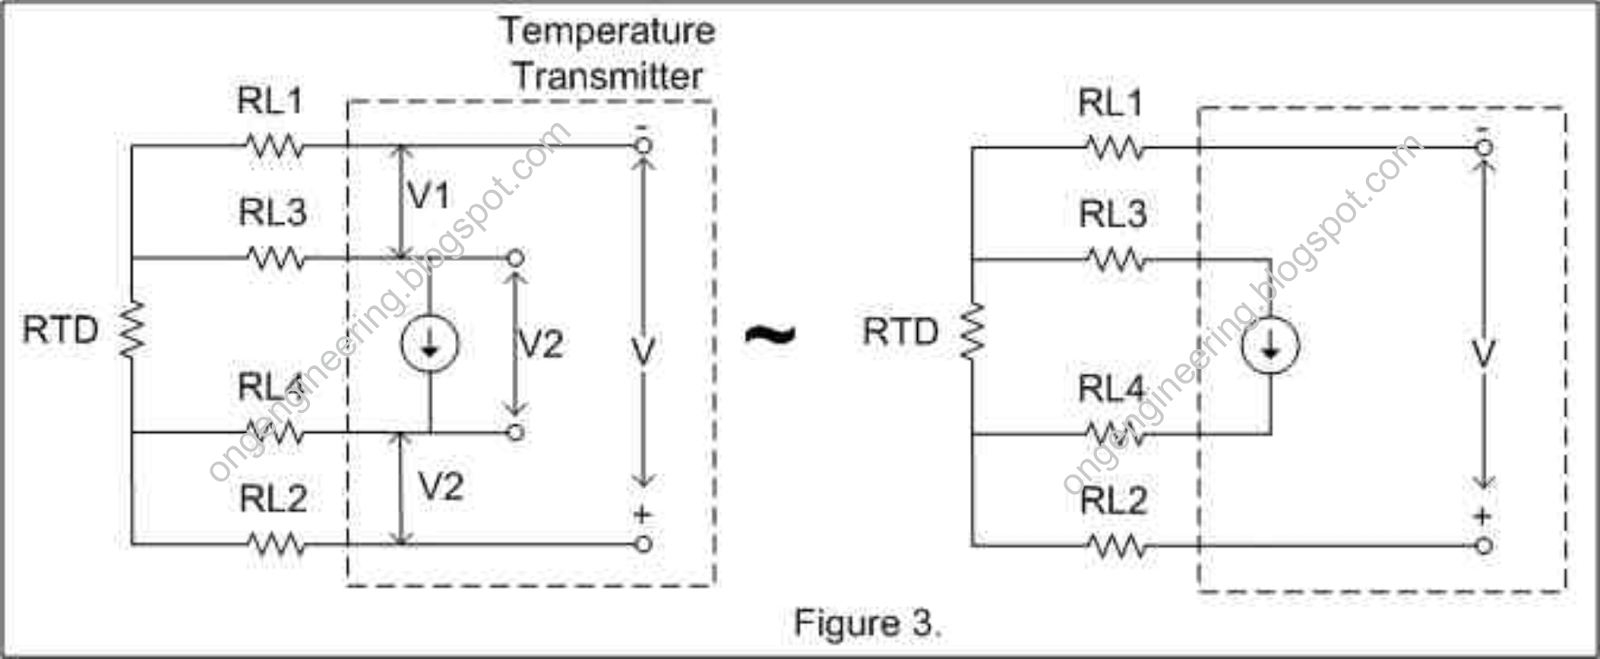 hight resolution of for best compensation of wire resistance used by rtd 4 wires are the best choices it subtracts all the wire resistance from the voltage drop equation see